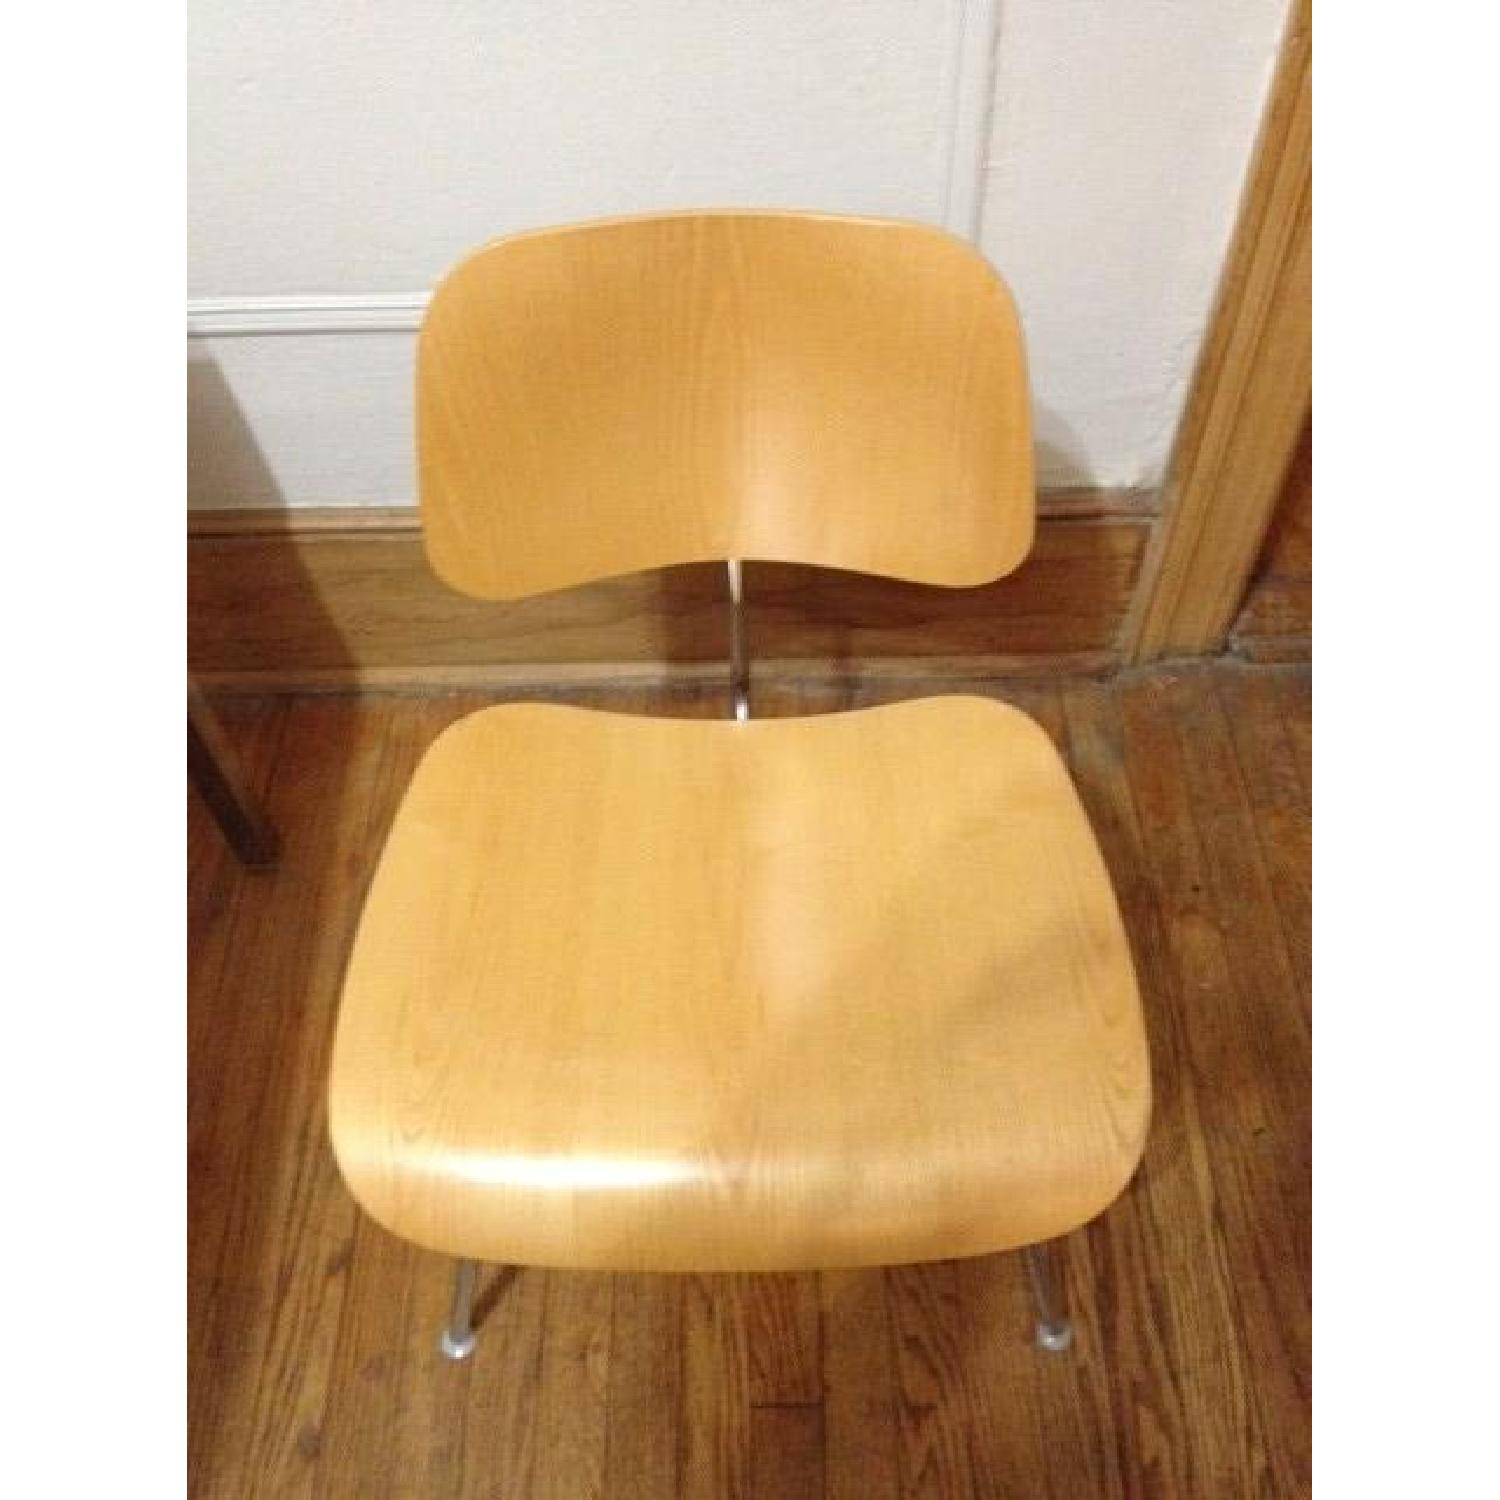 Charles and Ray Eames Dining Chairs - Pair - image-11